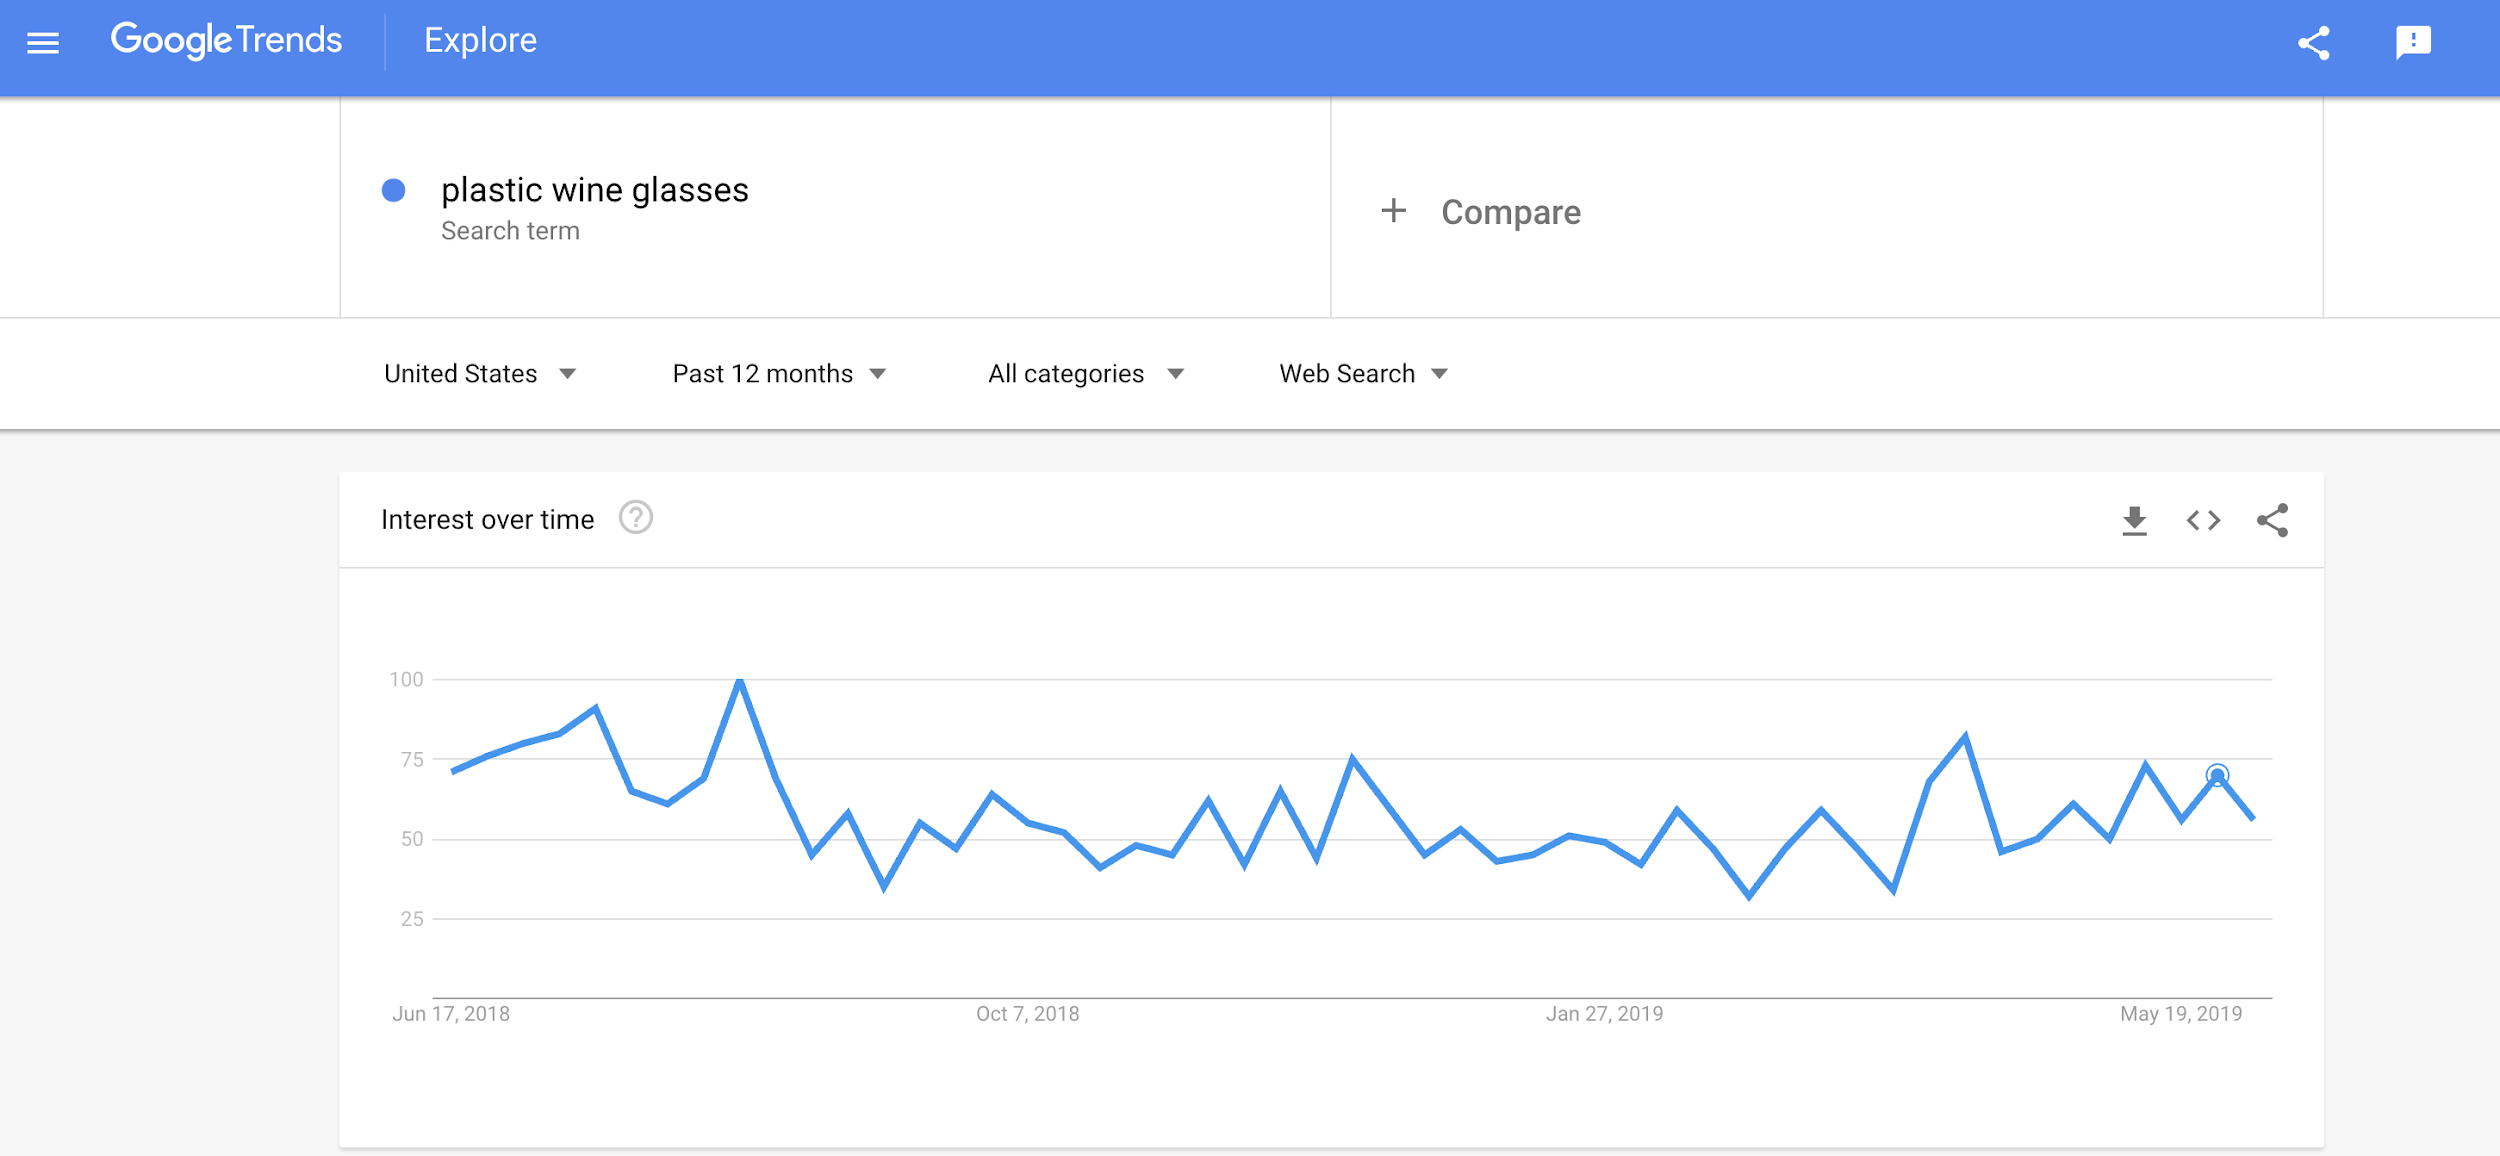 Google Trends product popularity